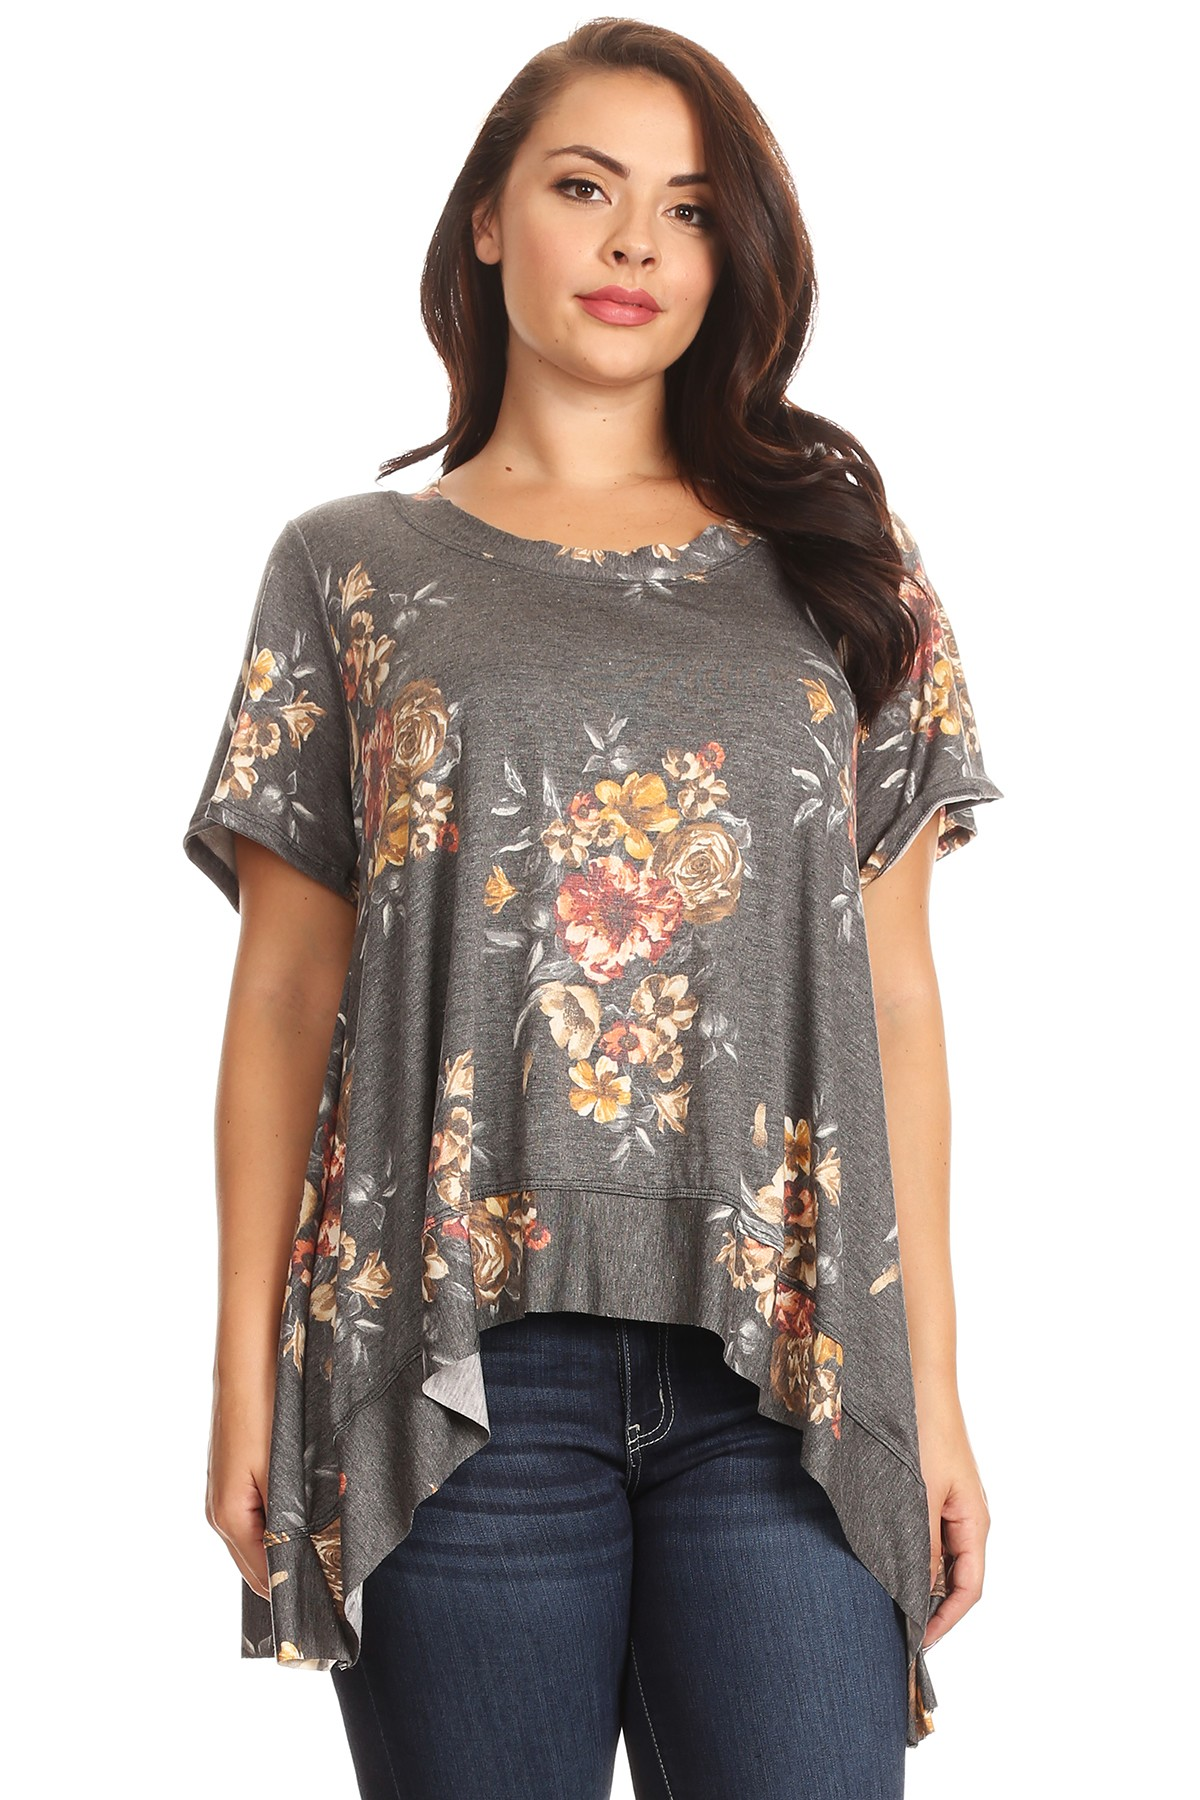 DESERE TUNIC IN GRAY FLORAL